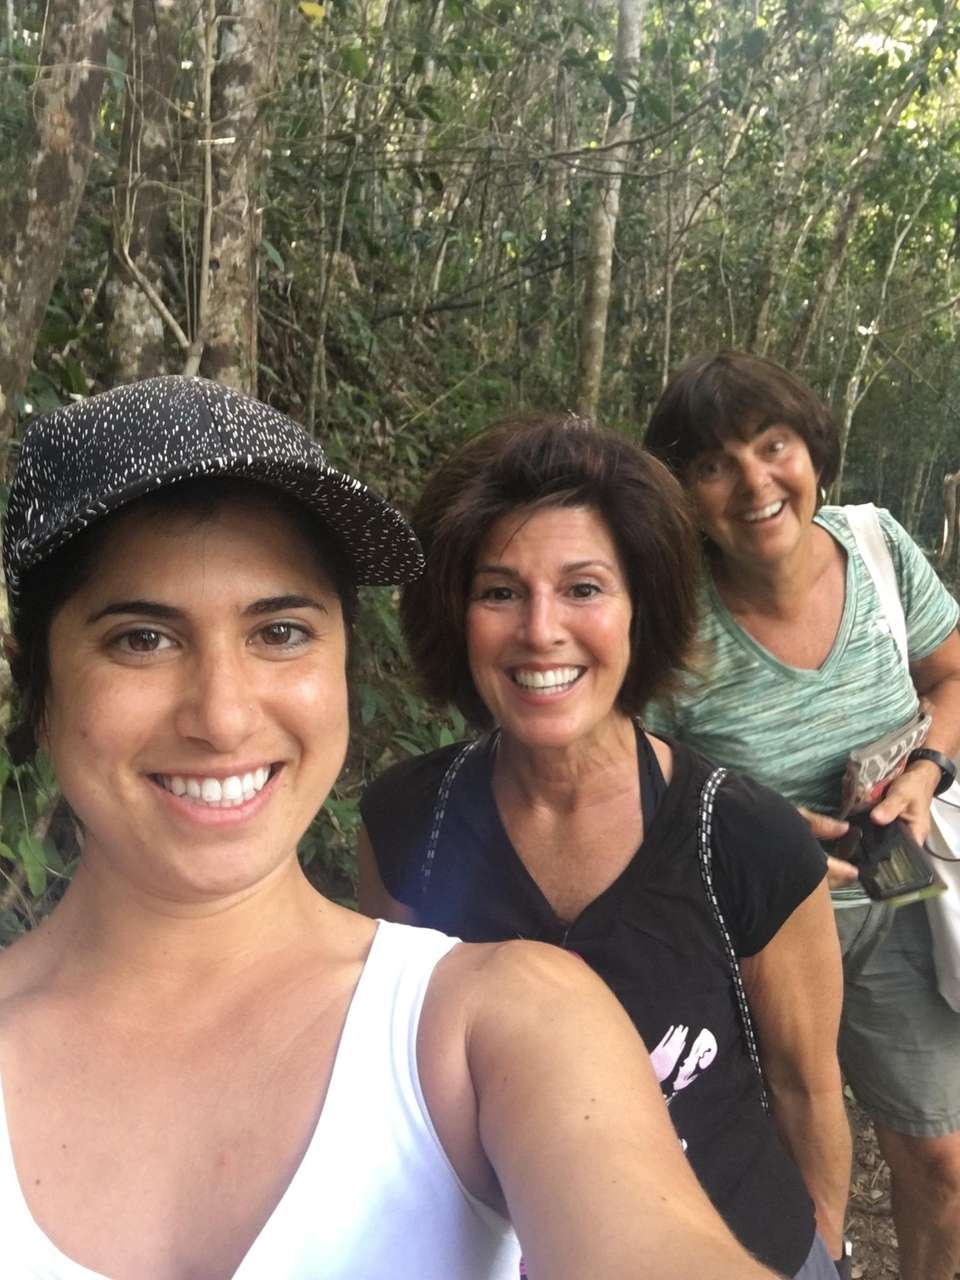 Hiking the trails of St. John, U.S.V.I's National